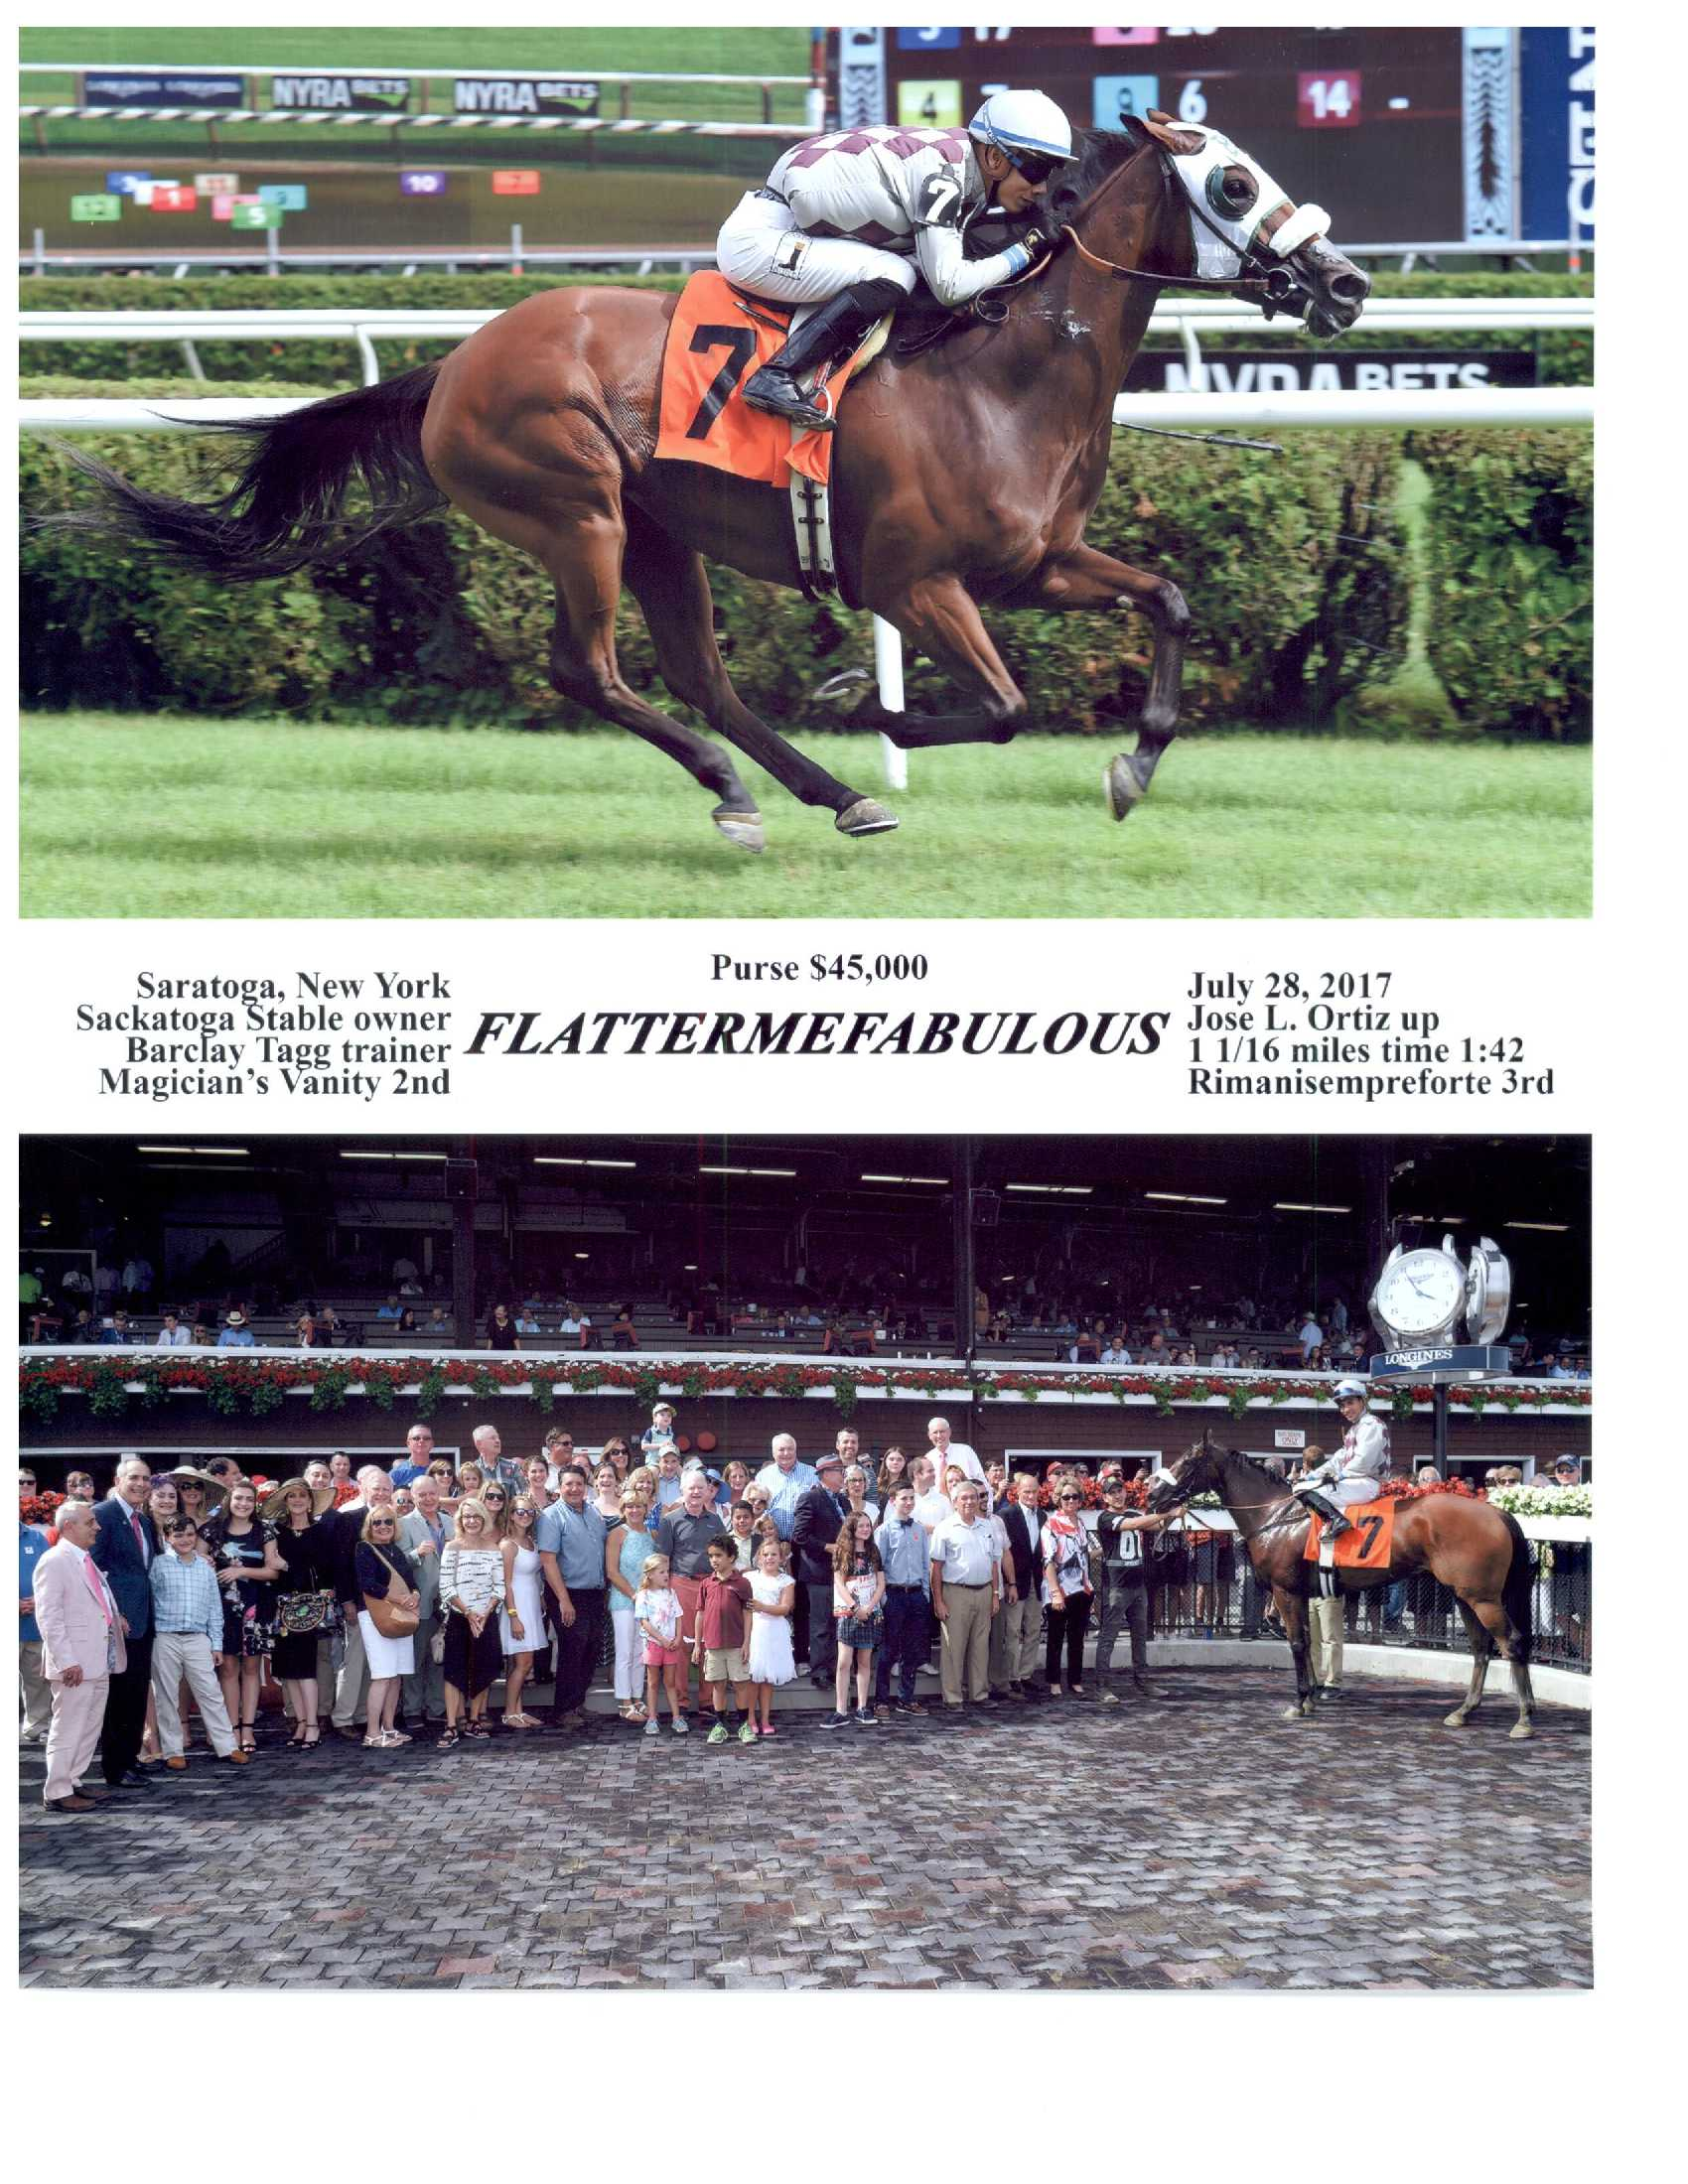 Flattermefabulous - July 28,2018 win at Saratoga .jpg